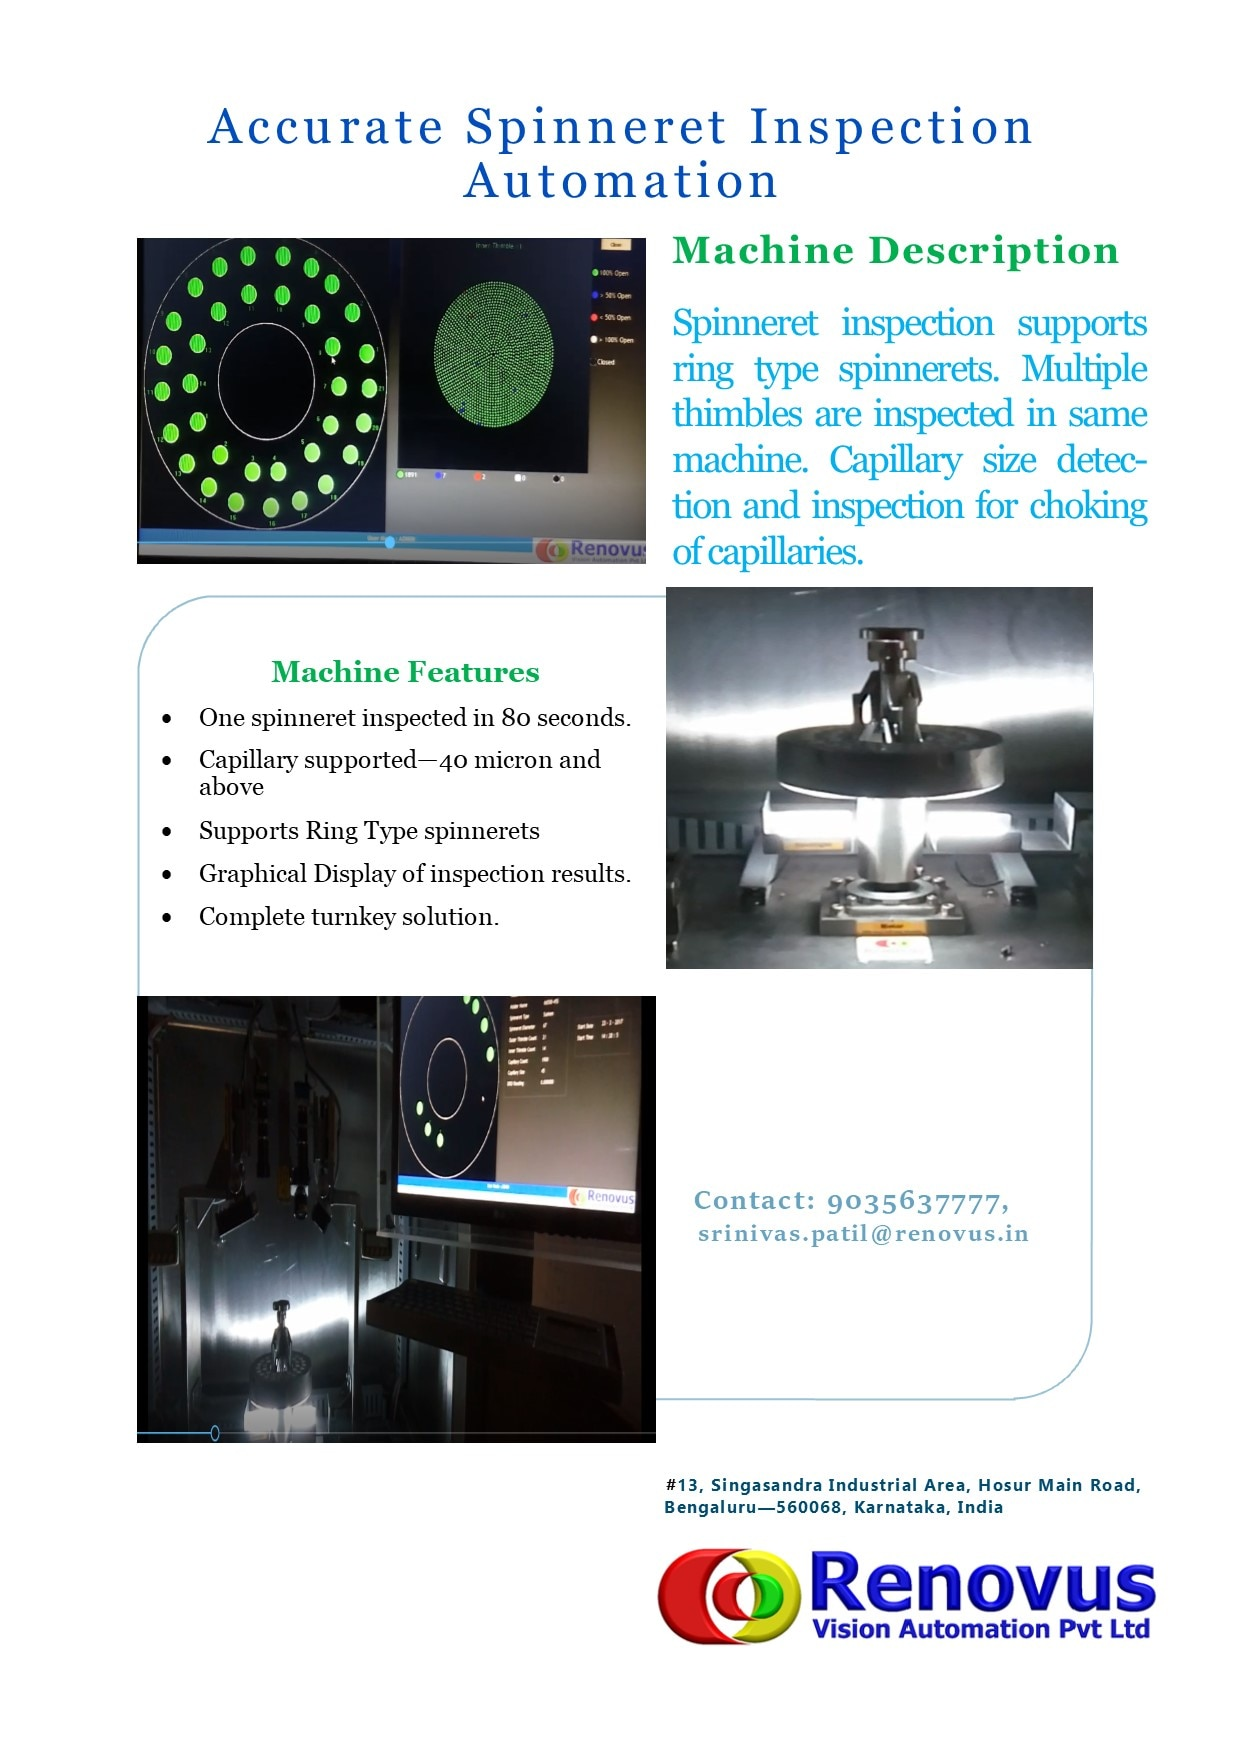 Spinneret Inspection Machine  40 Micron Capillaries inspected  Graphical representation Data Base storage for traceability